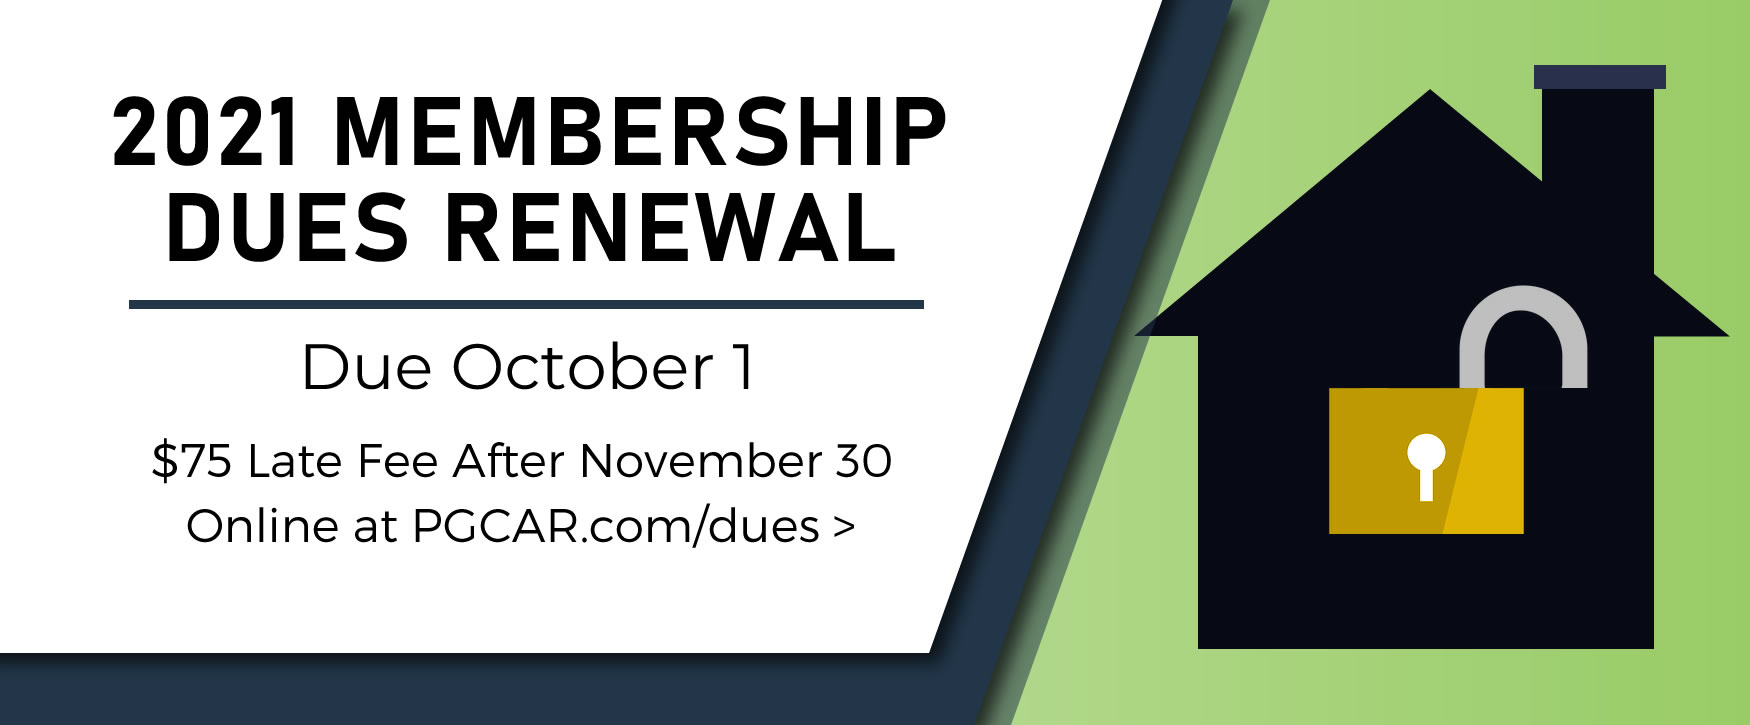 Renew your PGCAR membership online